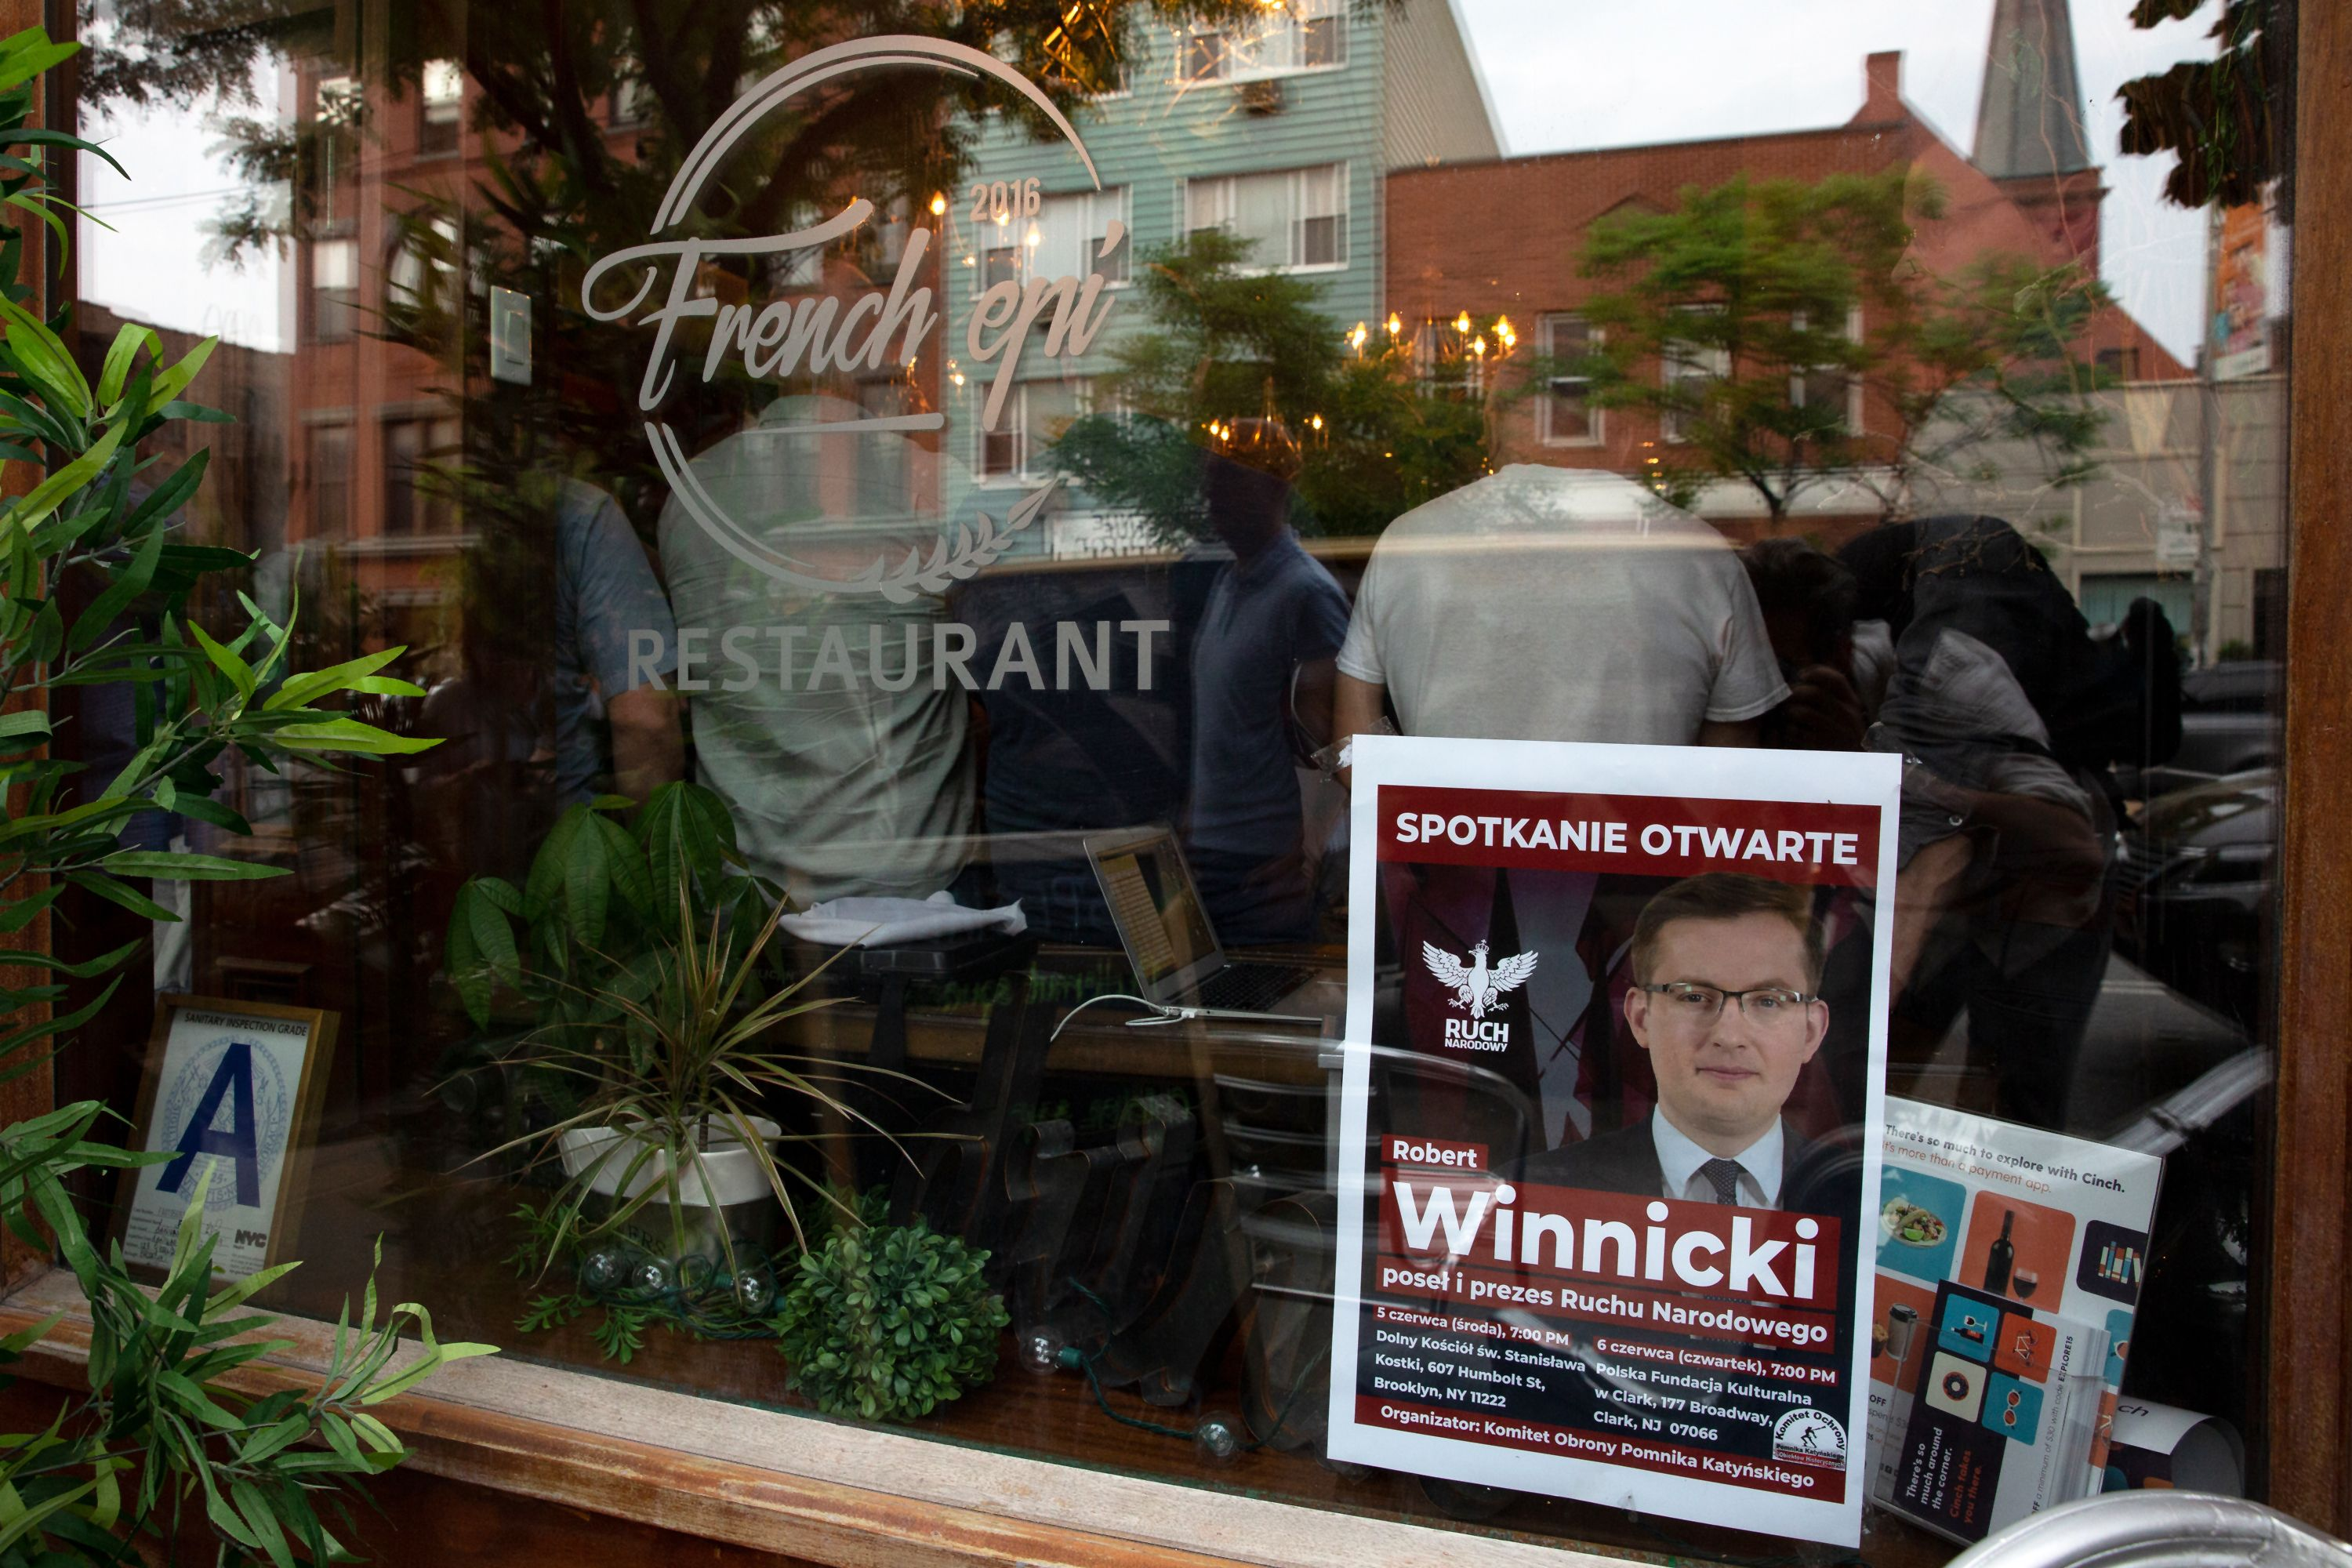 More than 100 people packed into Greenpoint restaurant French Epi to hear Polish nationalist politician Robert Winnicki speak, June 5, 2019.